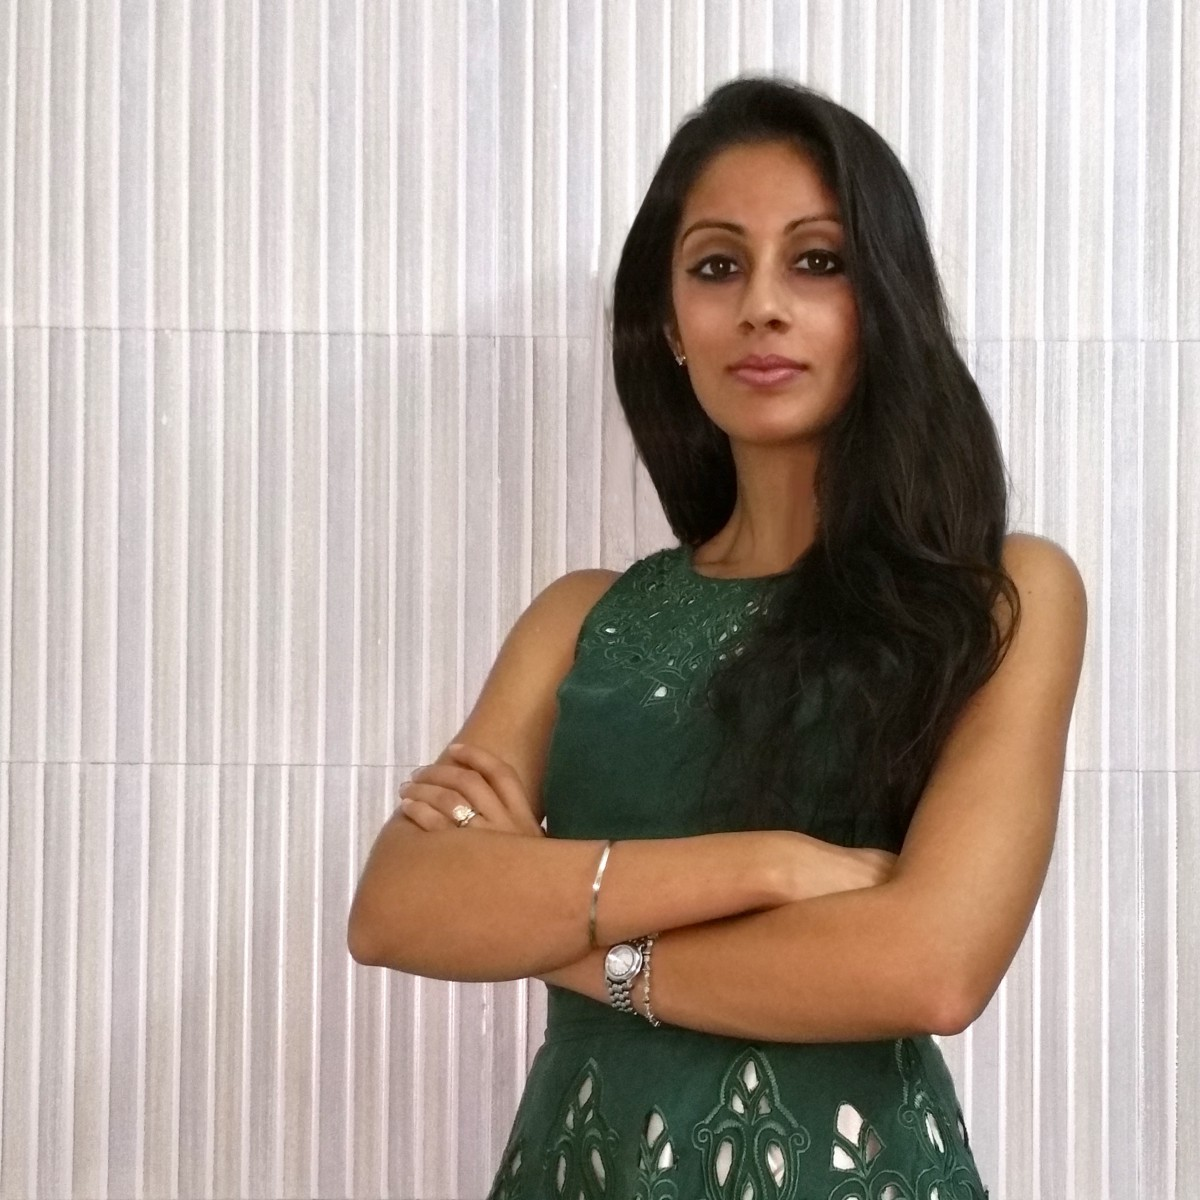 Interview with Ishveen Anand, CEO + Founder at OpenSponsorship